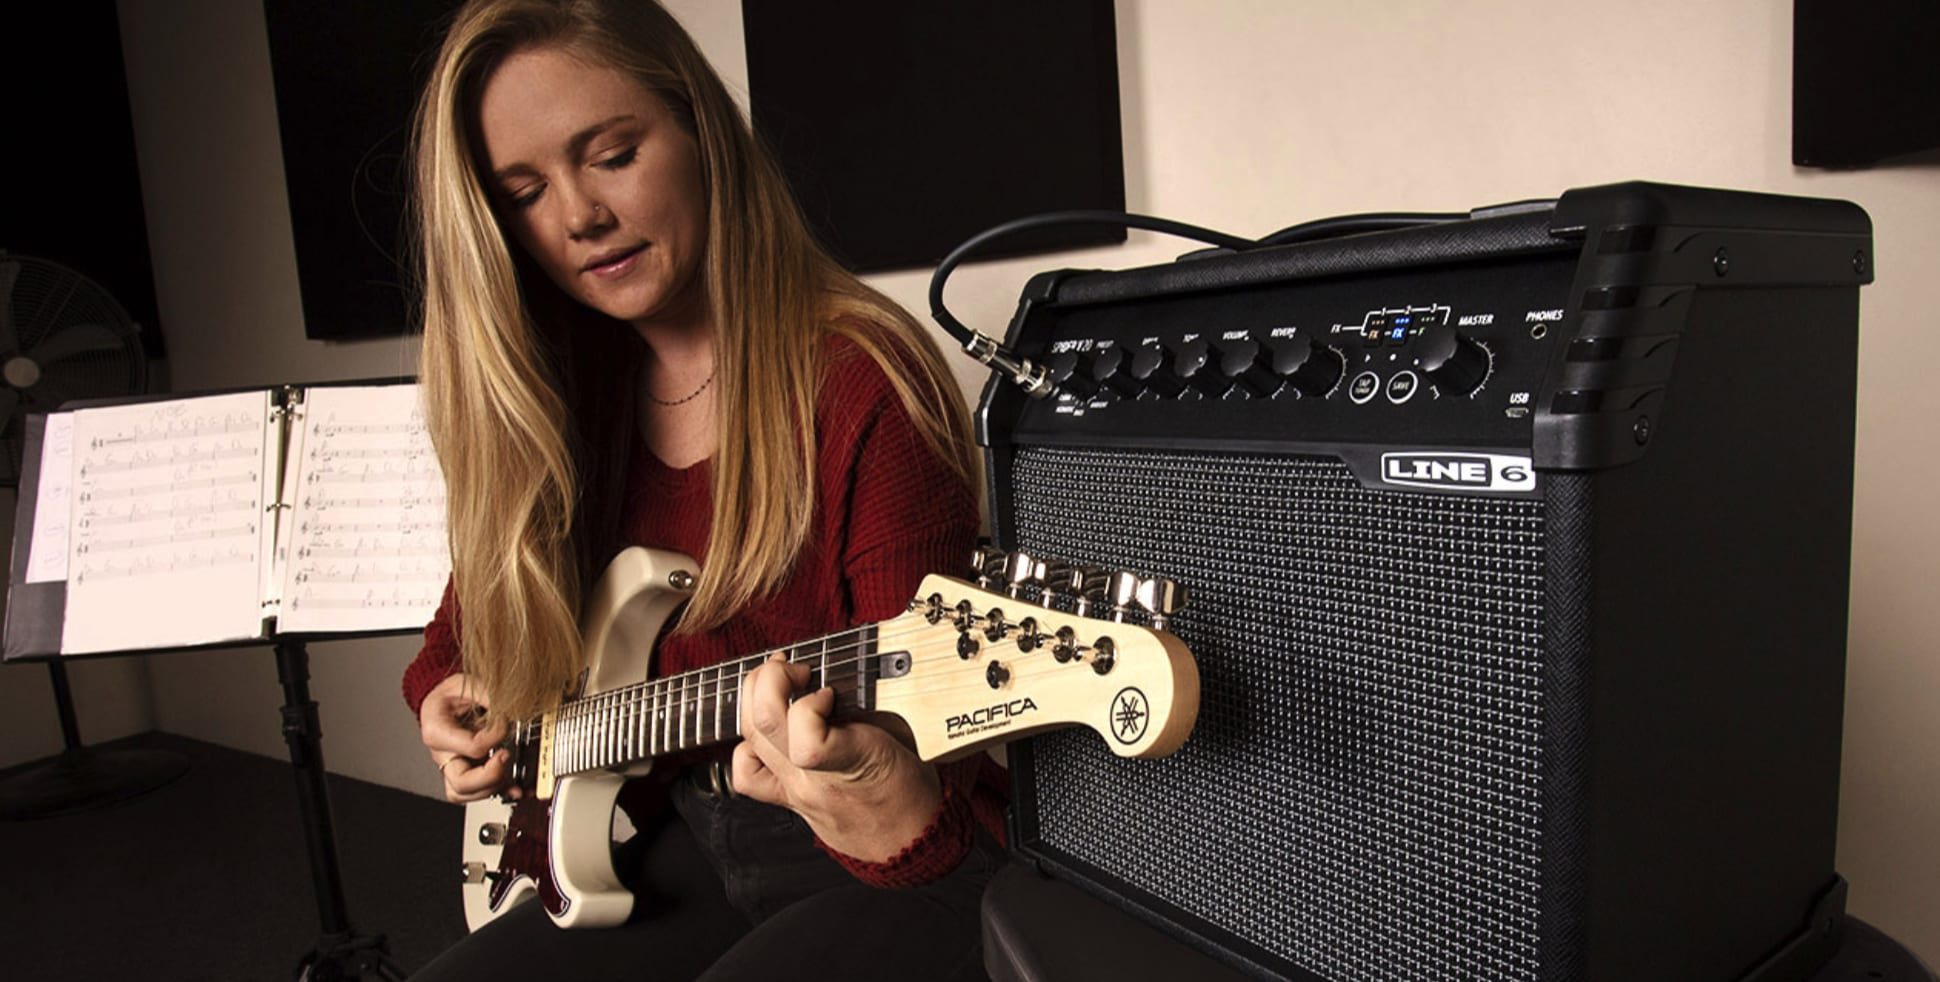 Line 6 Spider V 20 the perfect practise amp?